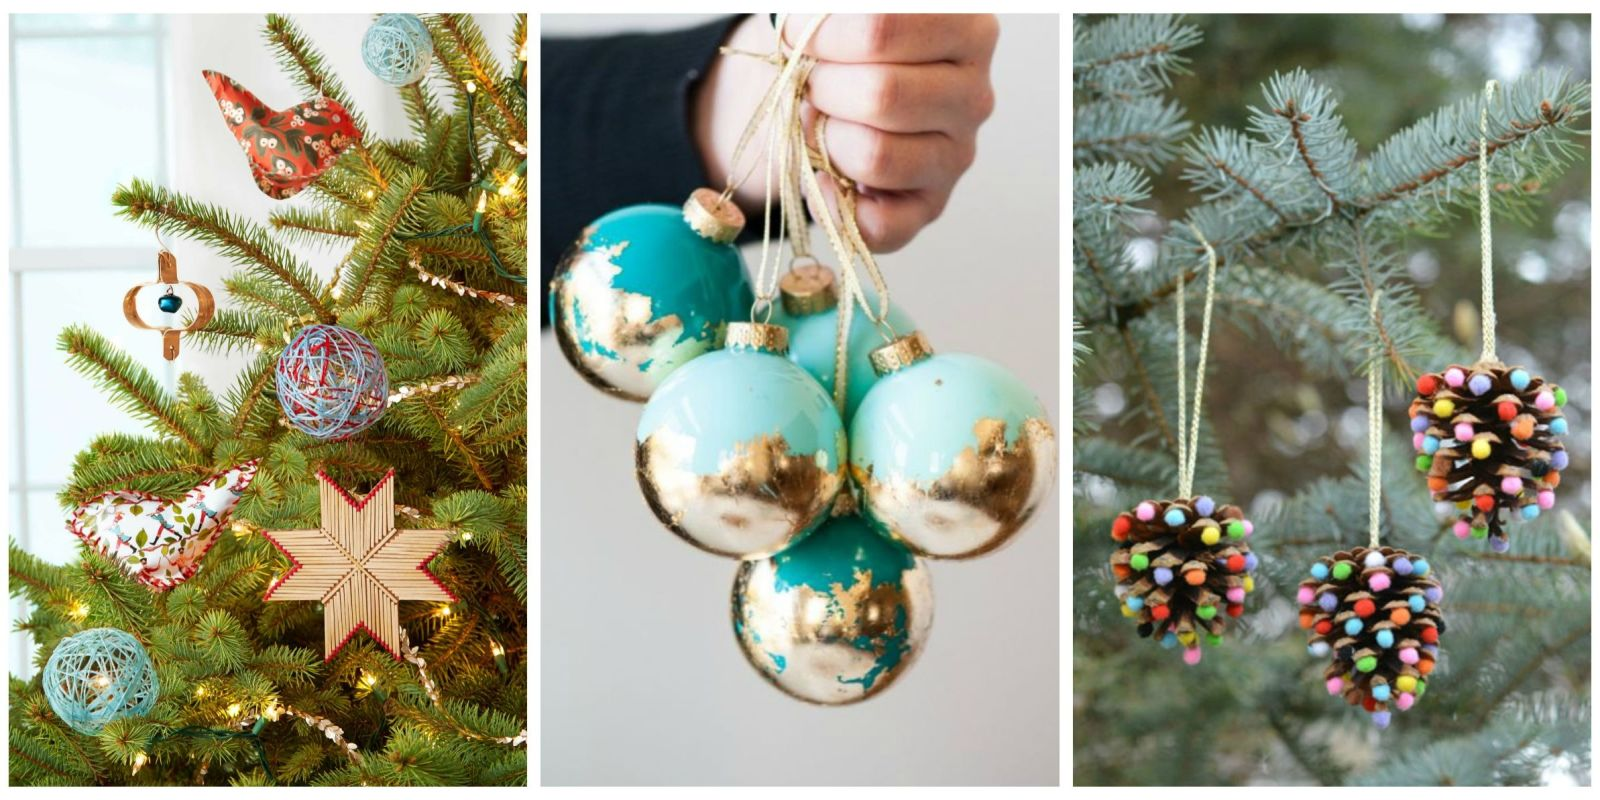 32 Homemade Diy Christmas Ornament Craft Ideas How To